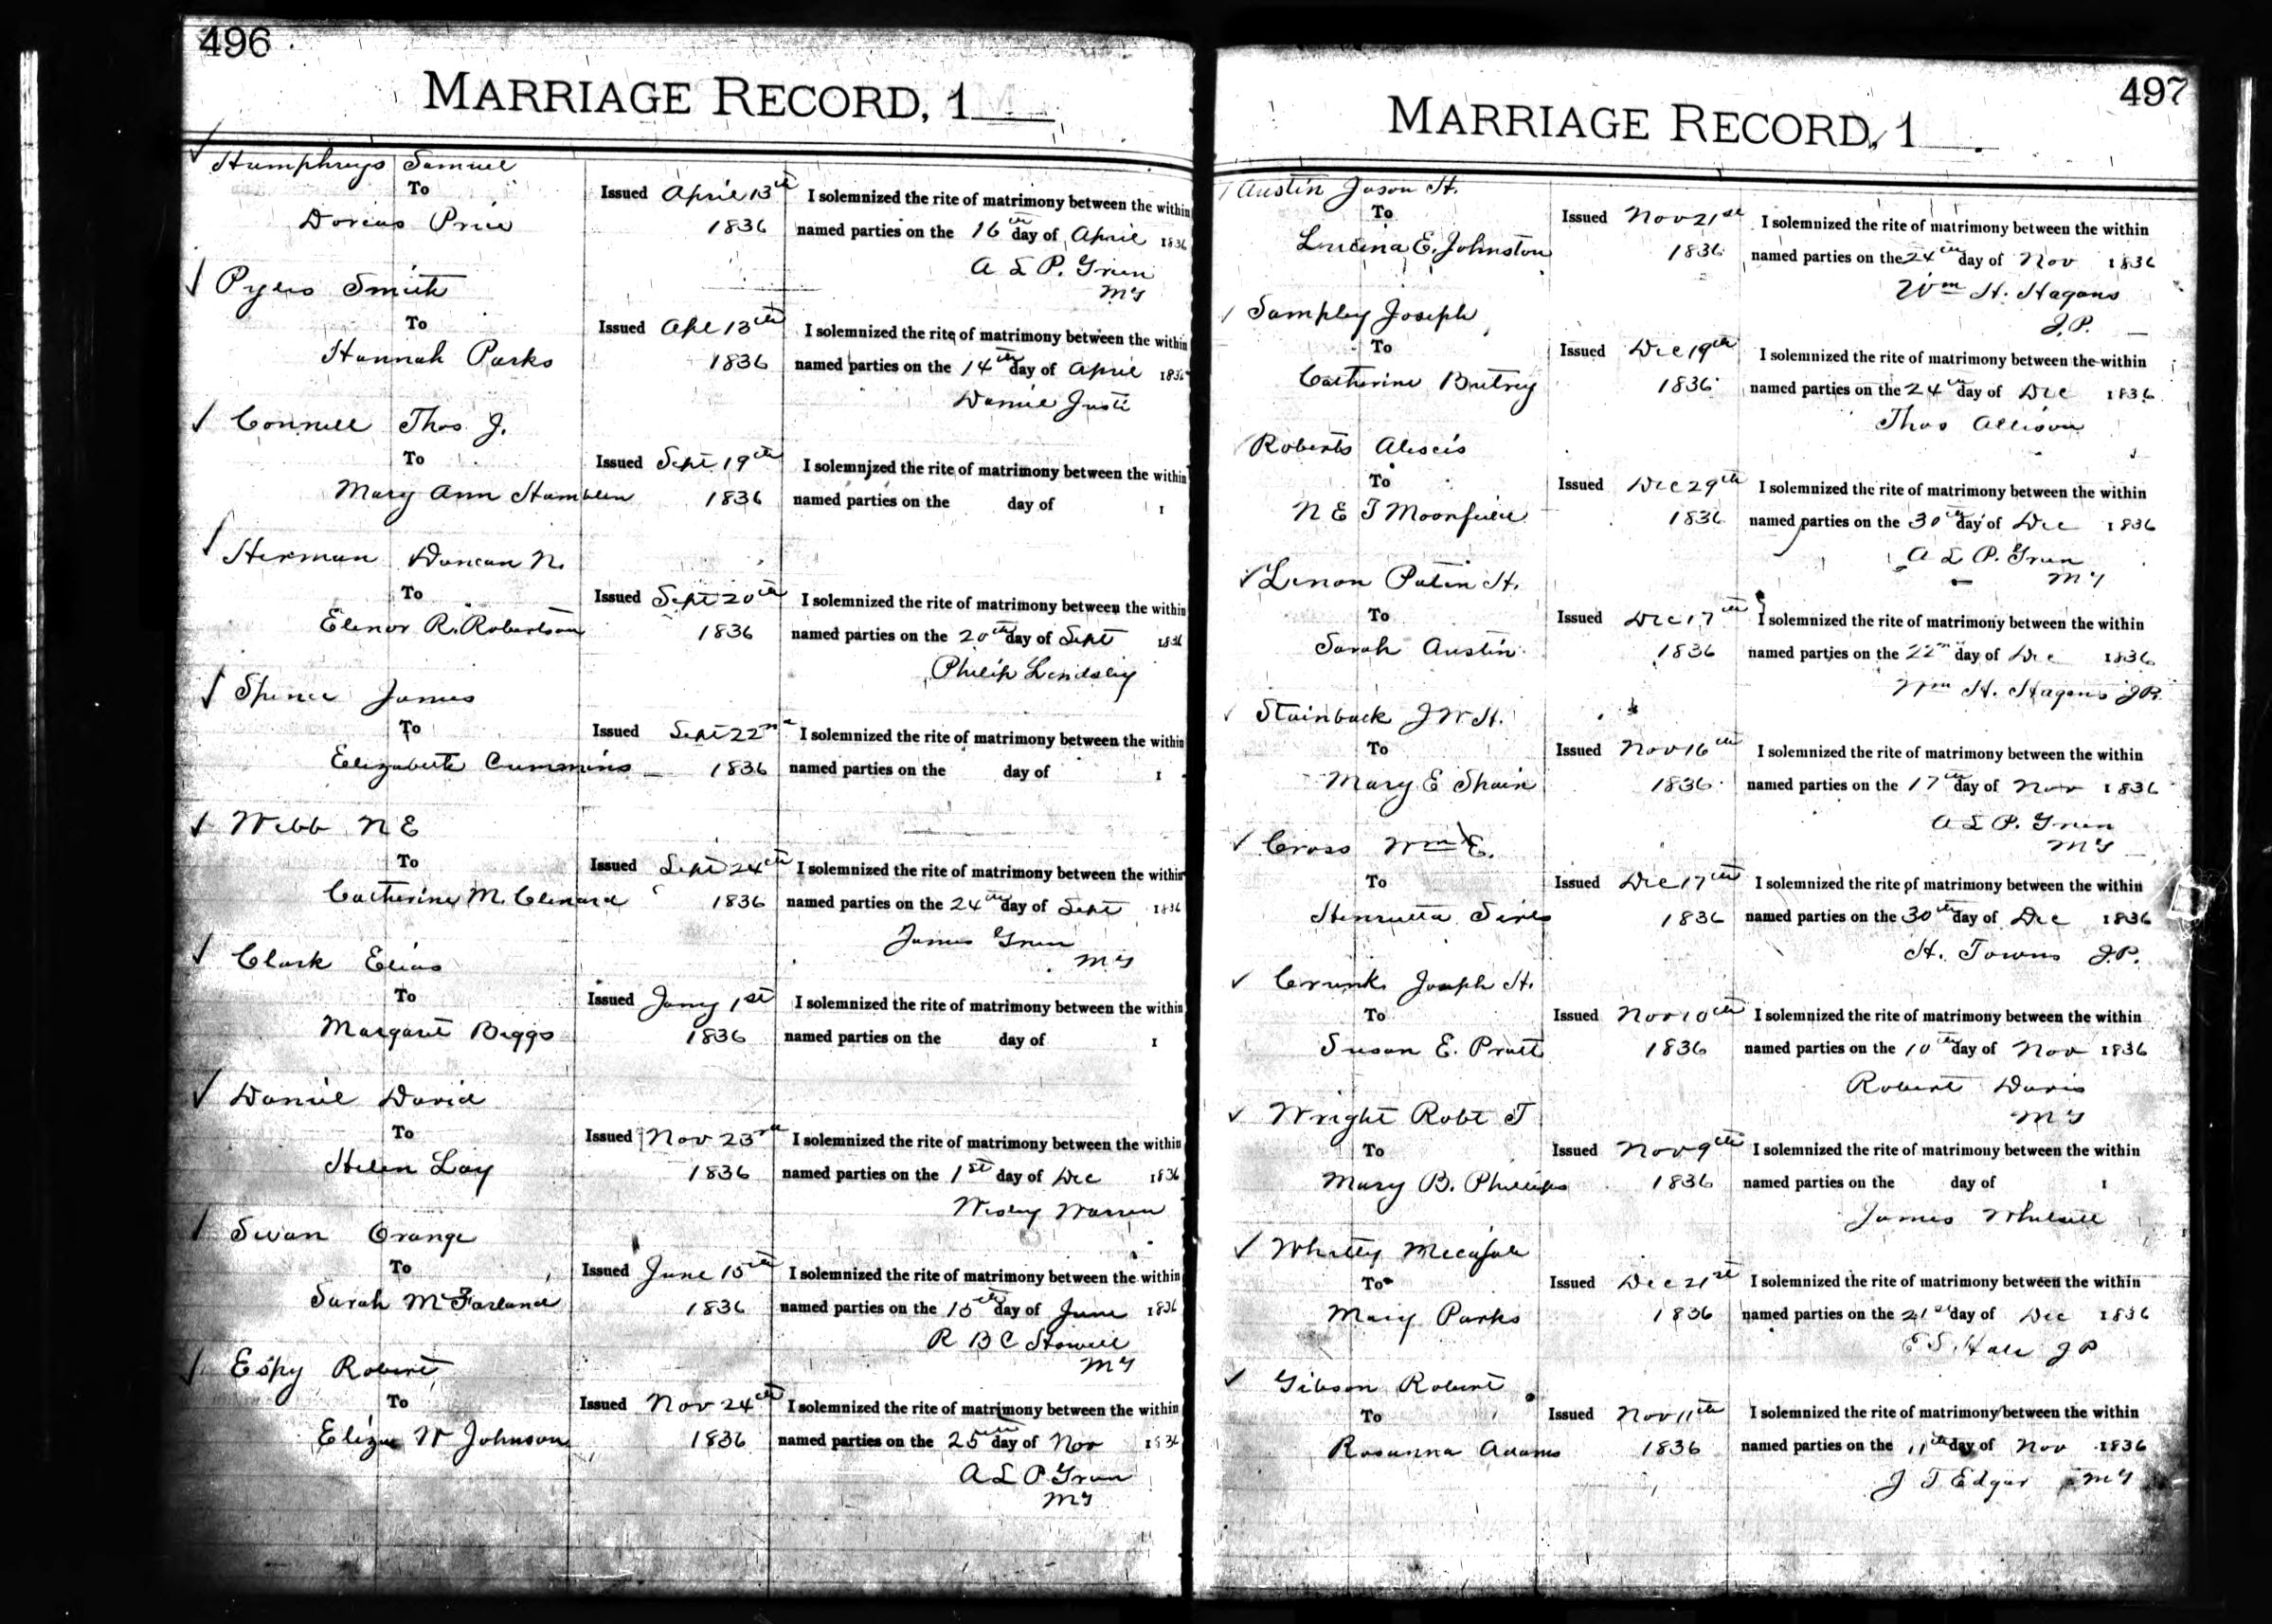 robertson county tn marriage records